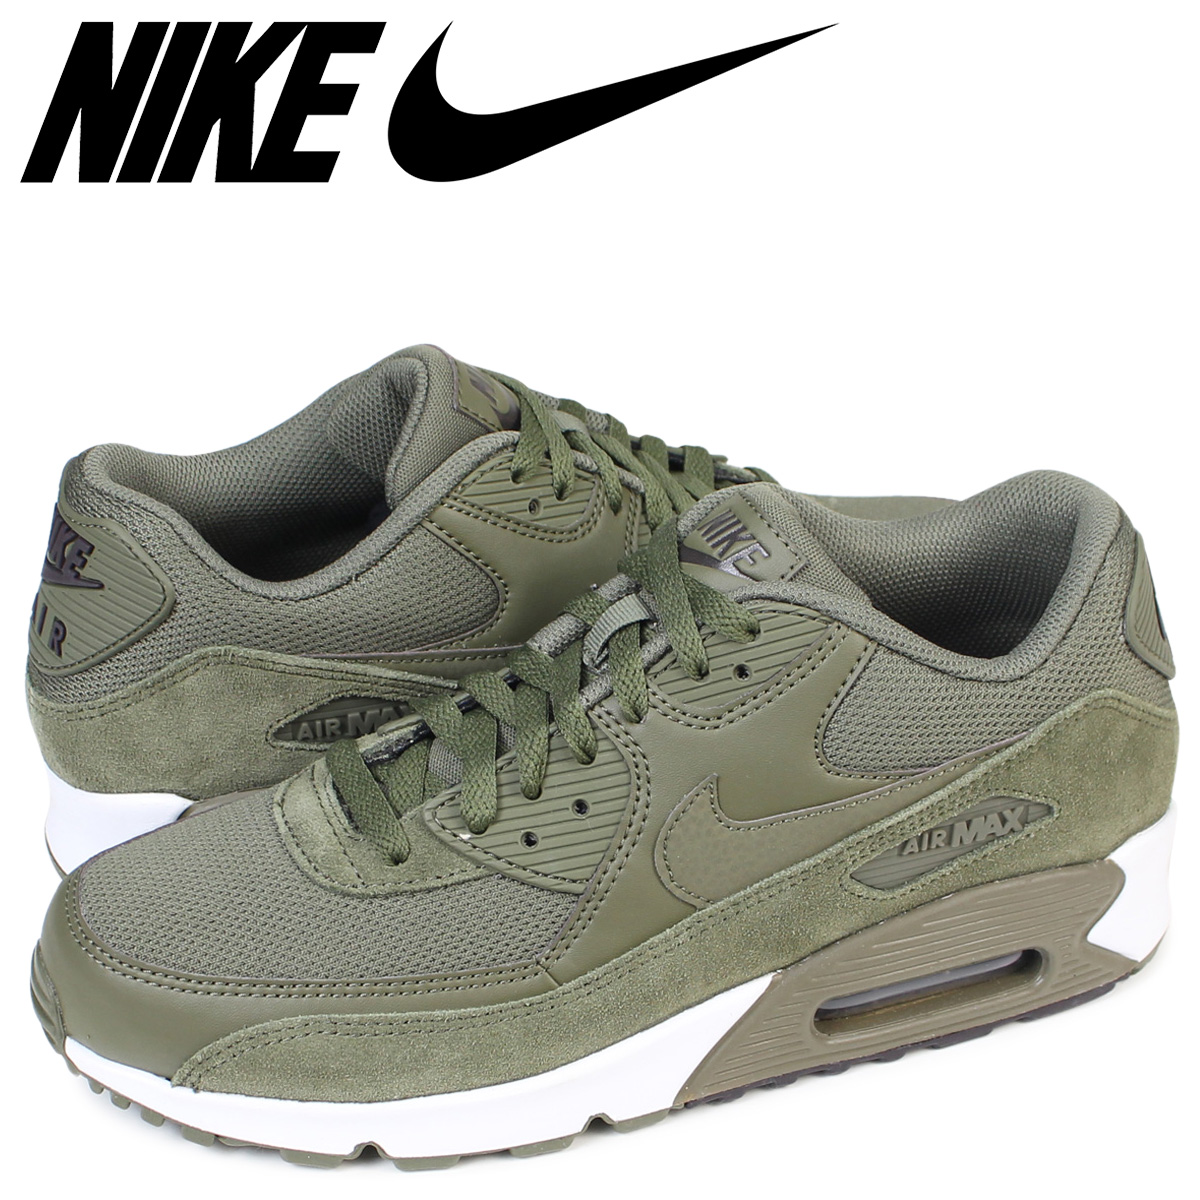 brand new 19064 89686 Whats up Sports  Nike NIKE Air Max 90 essential sneakers AIR MAX 90  ESSENTIAL 537,384-201 men s shoes olive  load planned Shinnyu load in  reservation ...